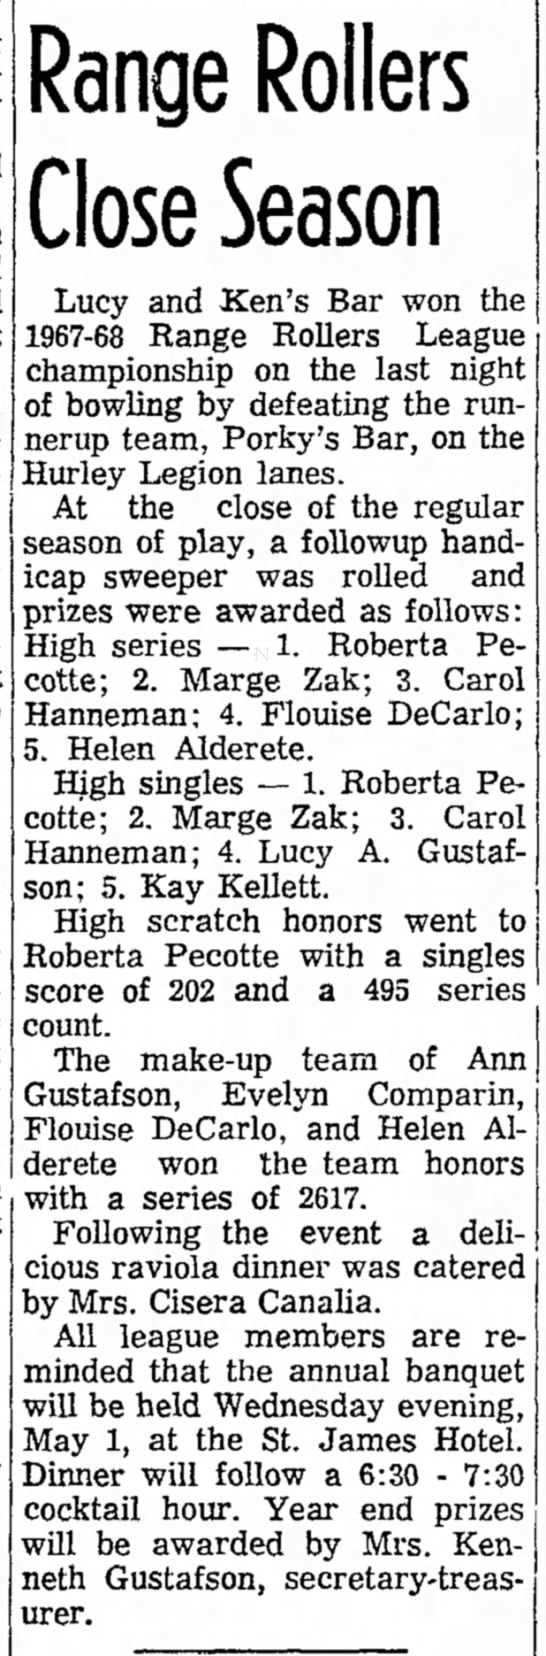 Ironwood Daily Globe,may 1,1968, page 12 -